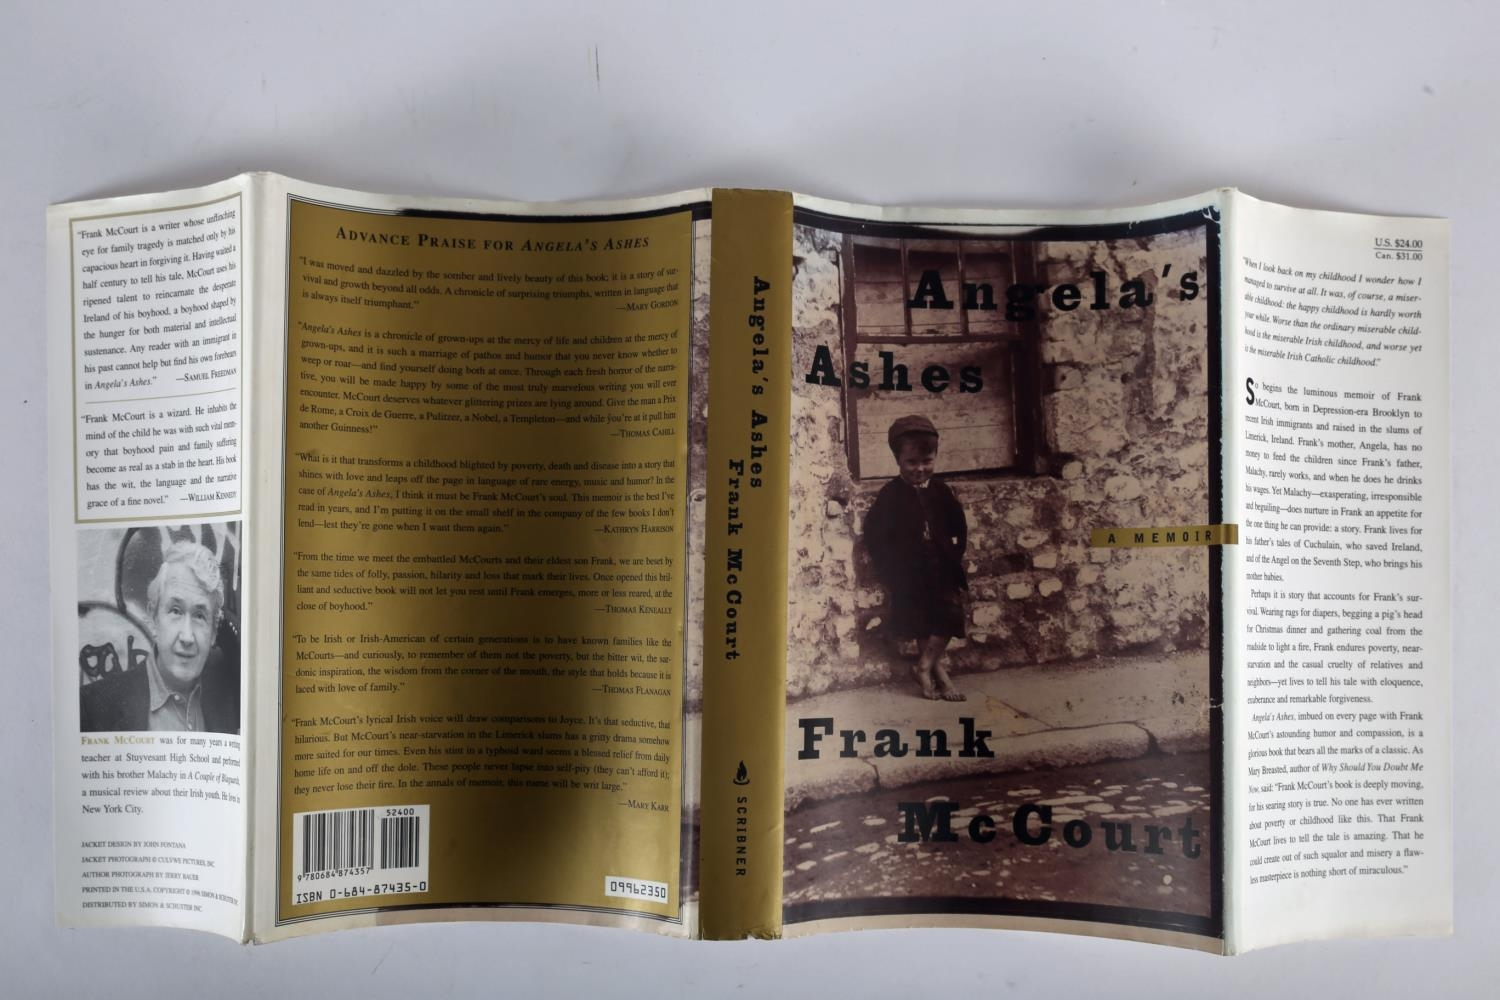 McCourt, Frank. Angela's Ashes. Scribner, New York. 1996, first edition, 8vo. red cloth gilt and - Image 4 of 4